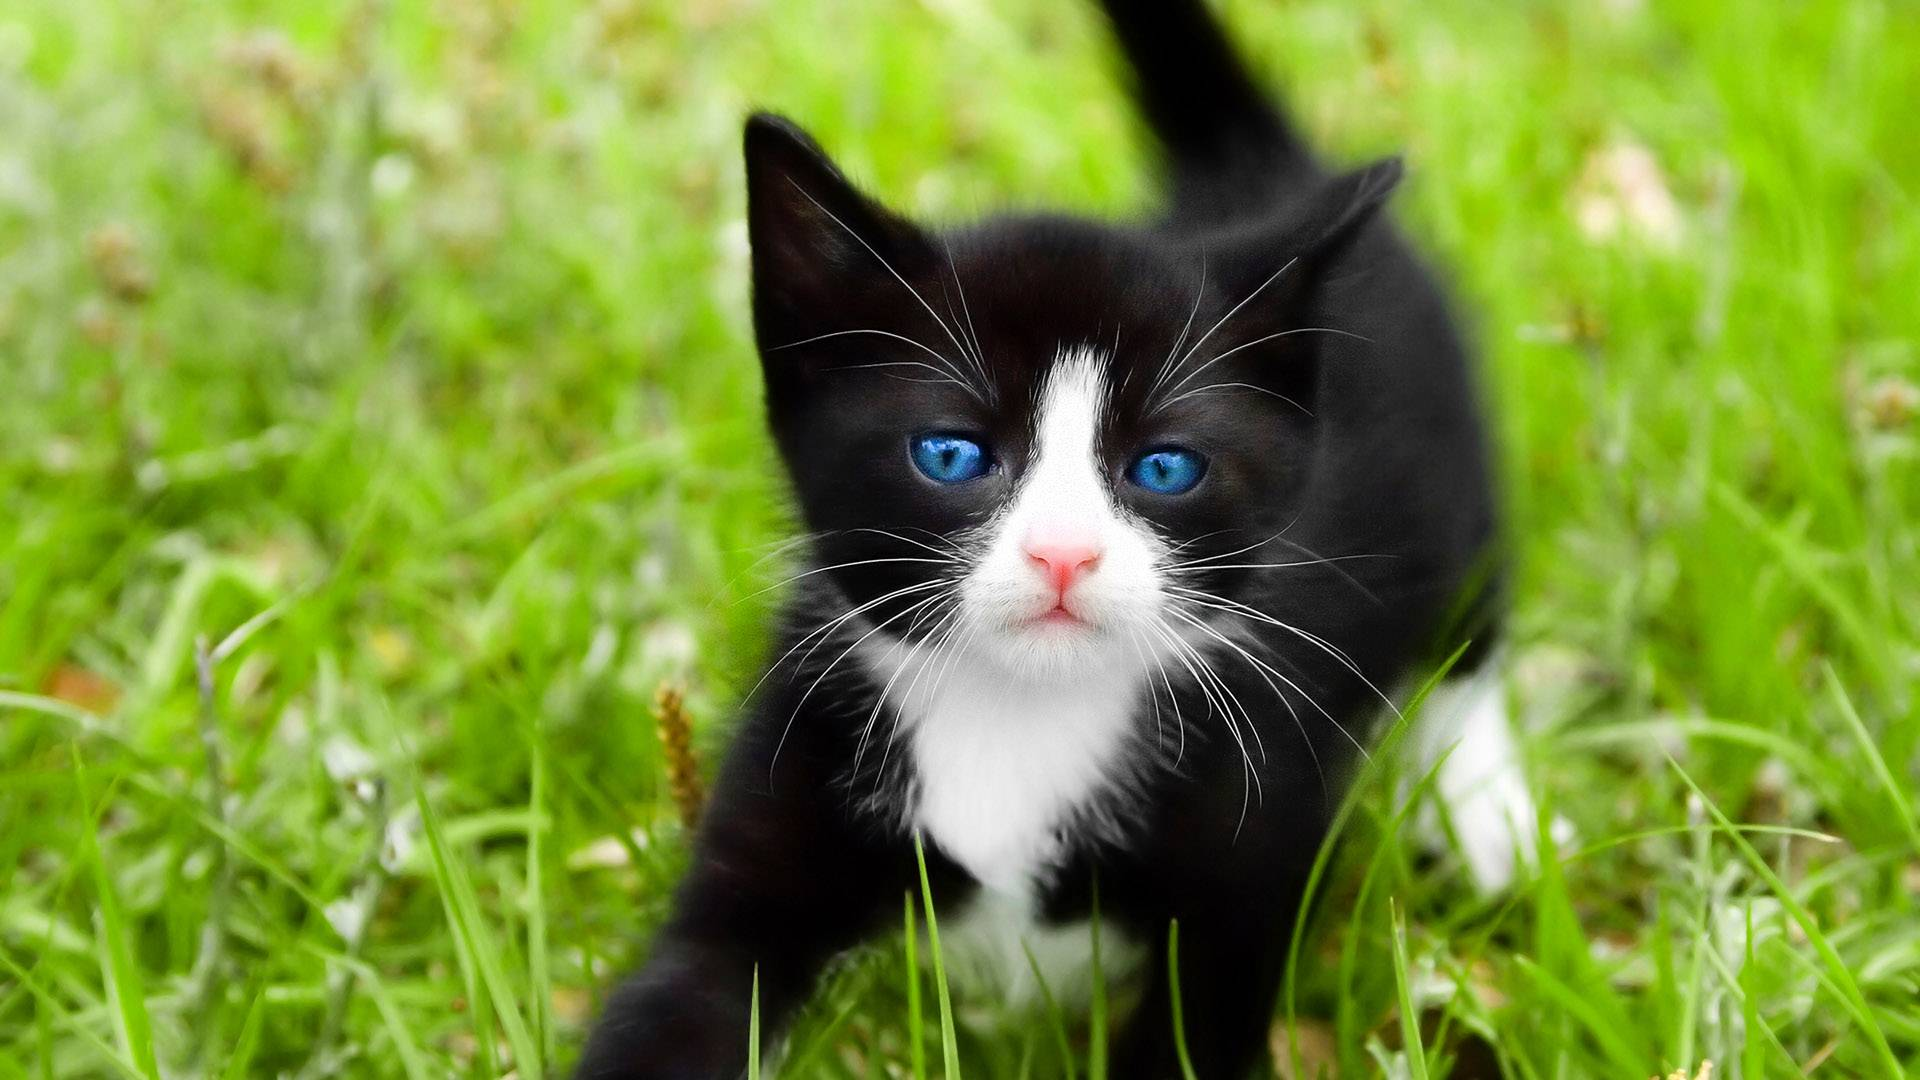 Black and White Kitten Wallpaper   kittens Wallpaper 1920x1080